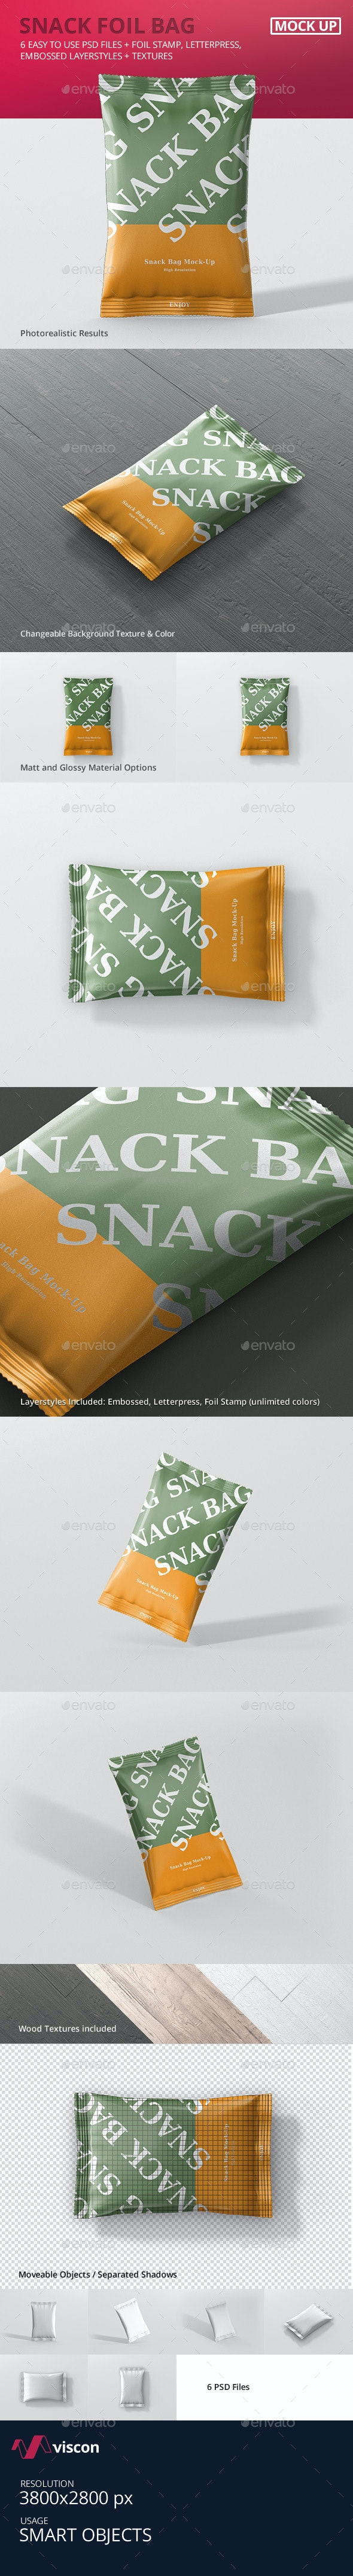 Snack Foil Bag Mockup - Food and Drink Packaging